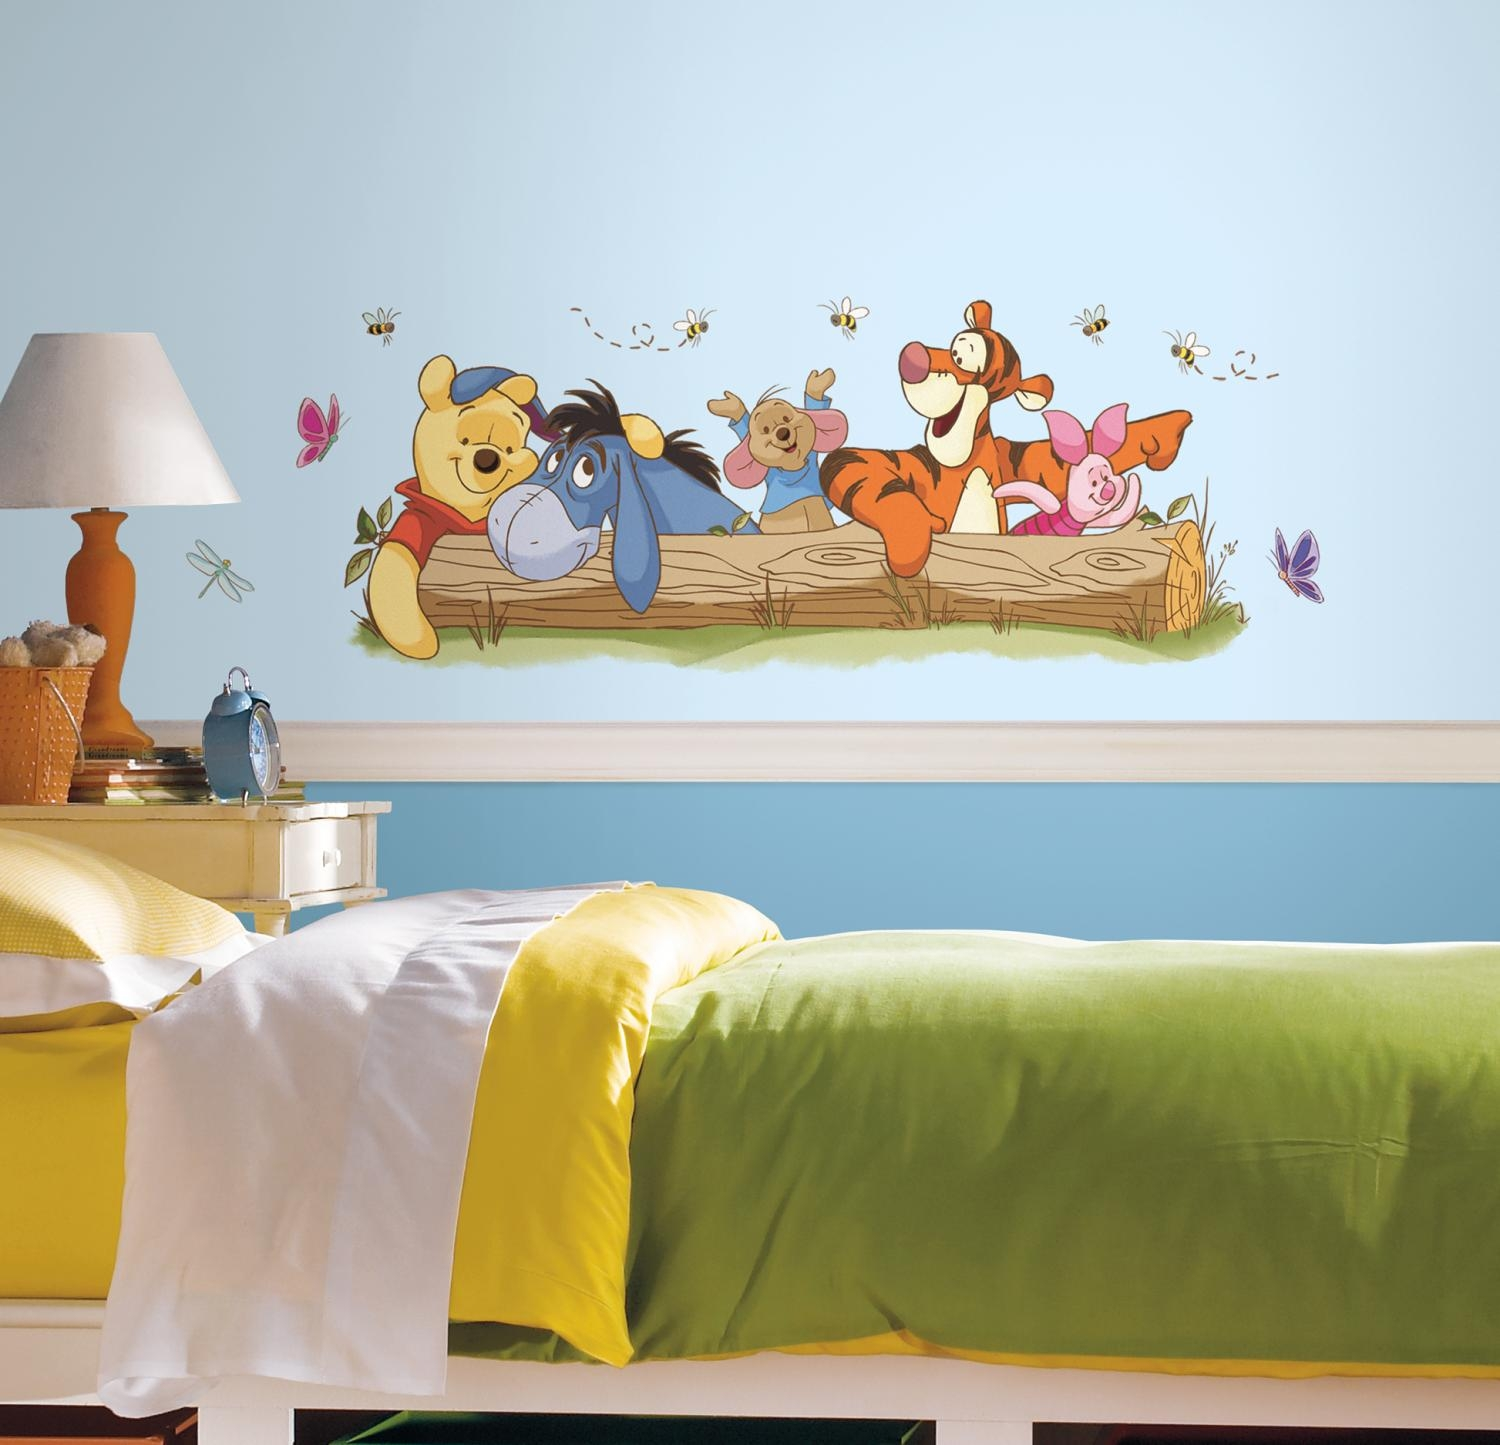 Rmk2553Gm Winnie The Pooh – Outdoor Fun Giant Wall Sticker Within Winnie The Pooh Wall Decor (View 2 of 20)